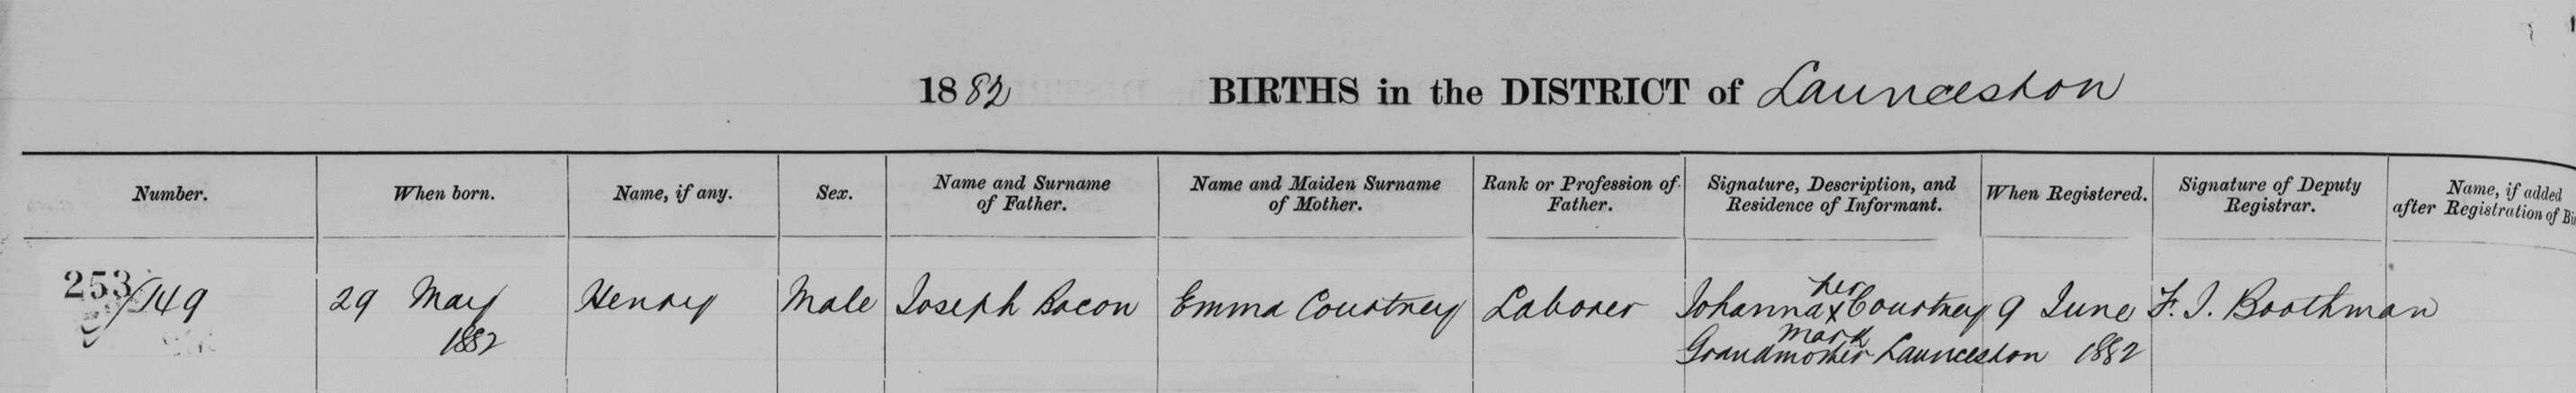 Courtesy Registry of Births Deaths and Marriages.